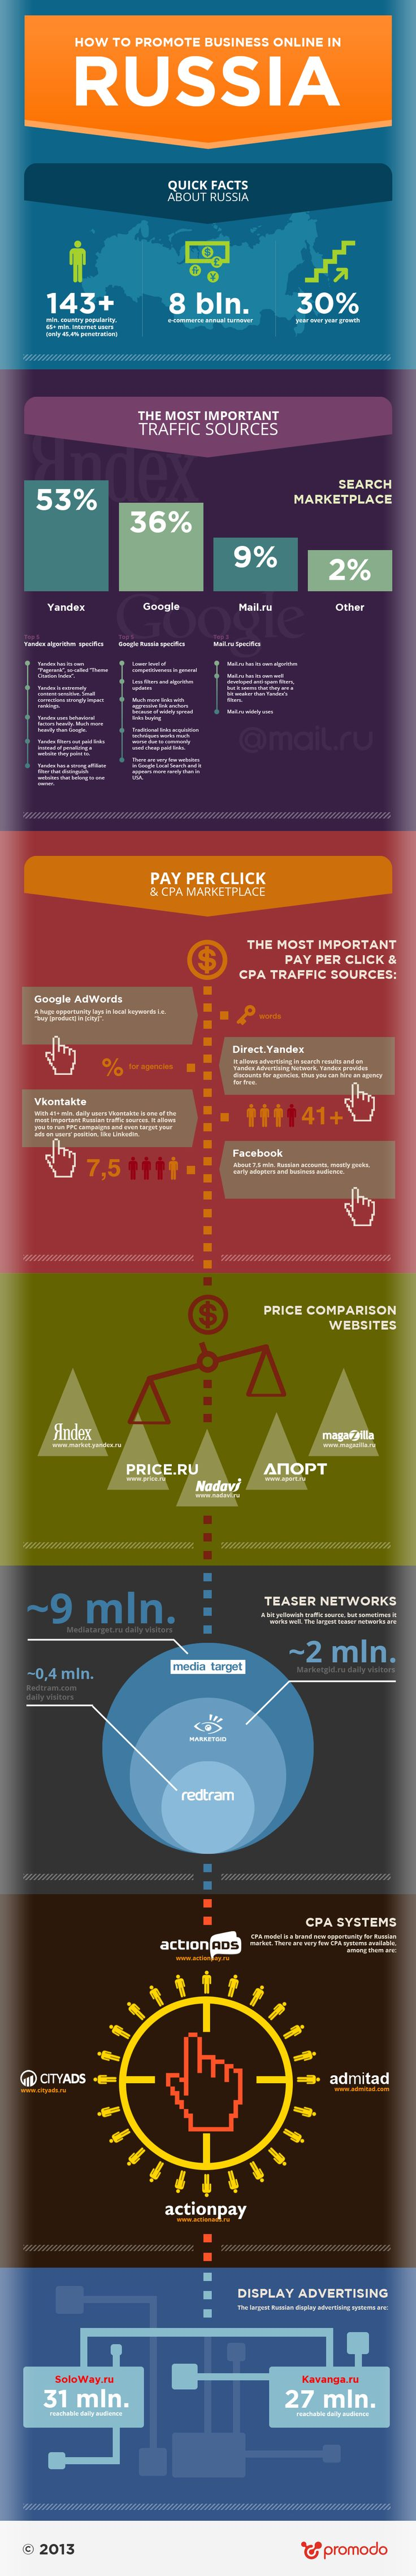 How to promote business online in Russia #infographic.